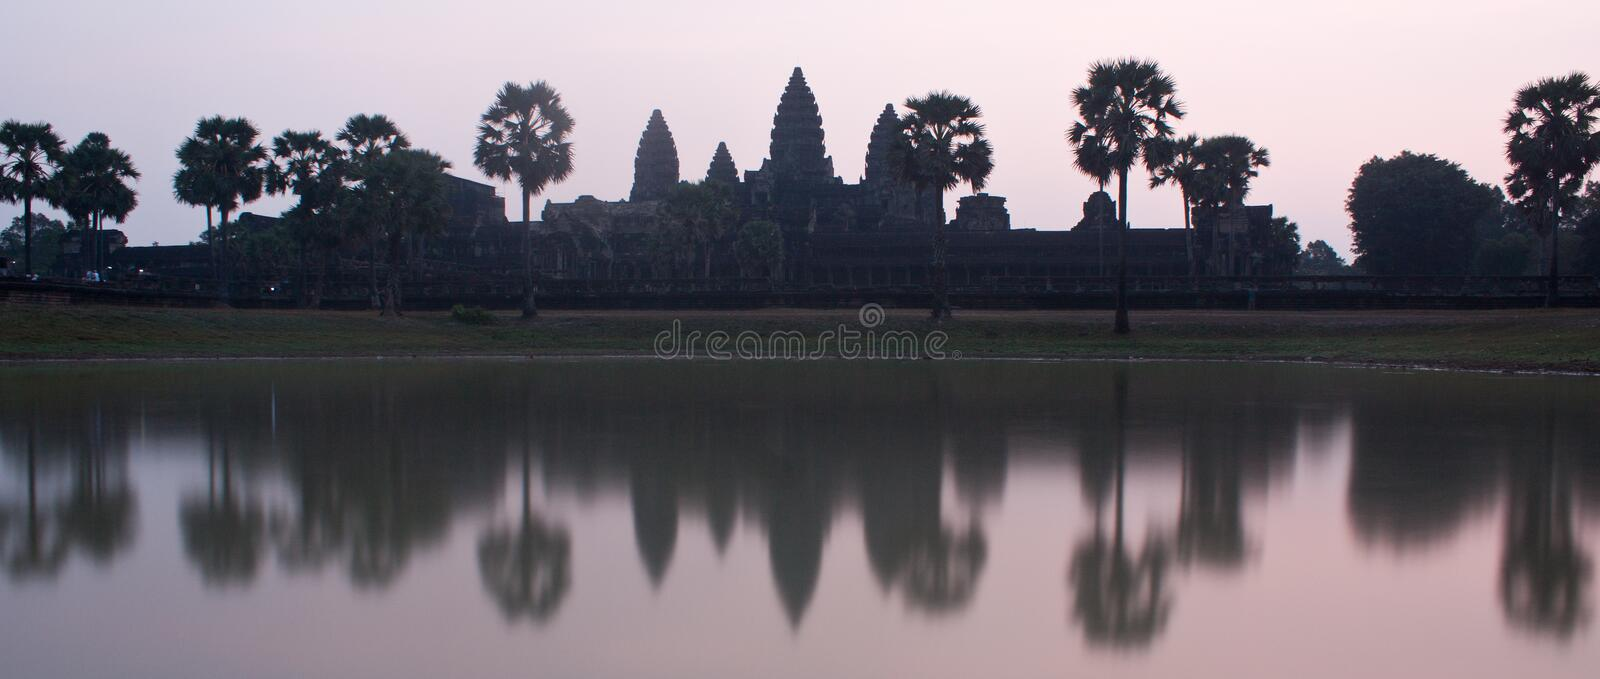 A purple sunrise photo of UNESCO Angkor Wat Temple near Siem Reap in Cambodia. In Asia, ancient, archaeology, architecture, art, asian, beautiful, blue stock image